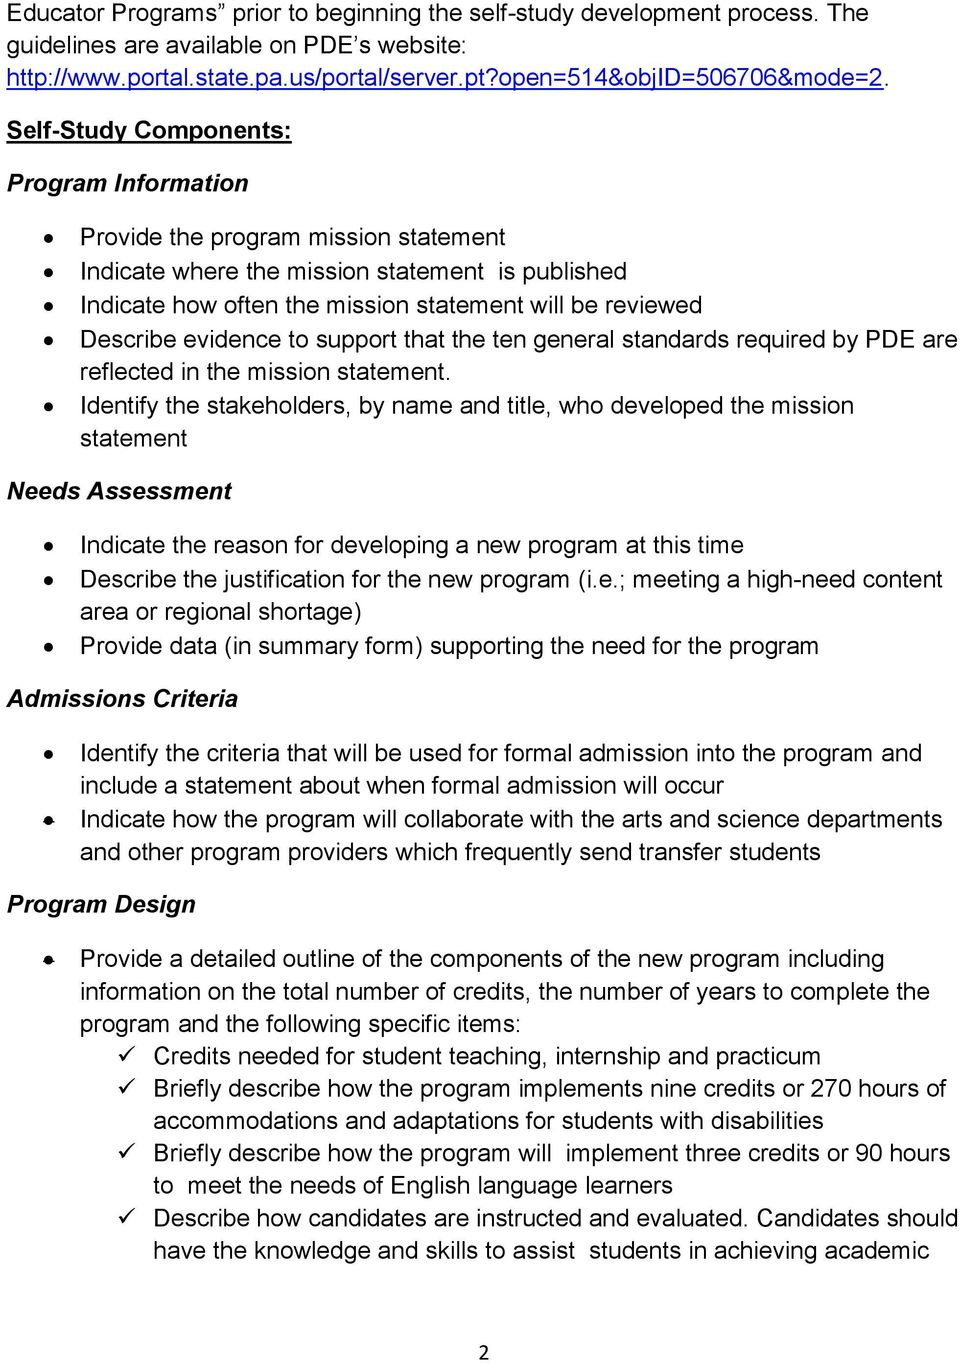 evidence to support that the ten general standards required by PDE are reflected in the mission statement.